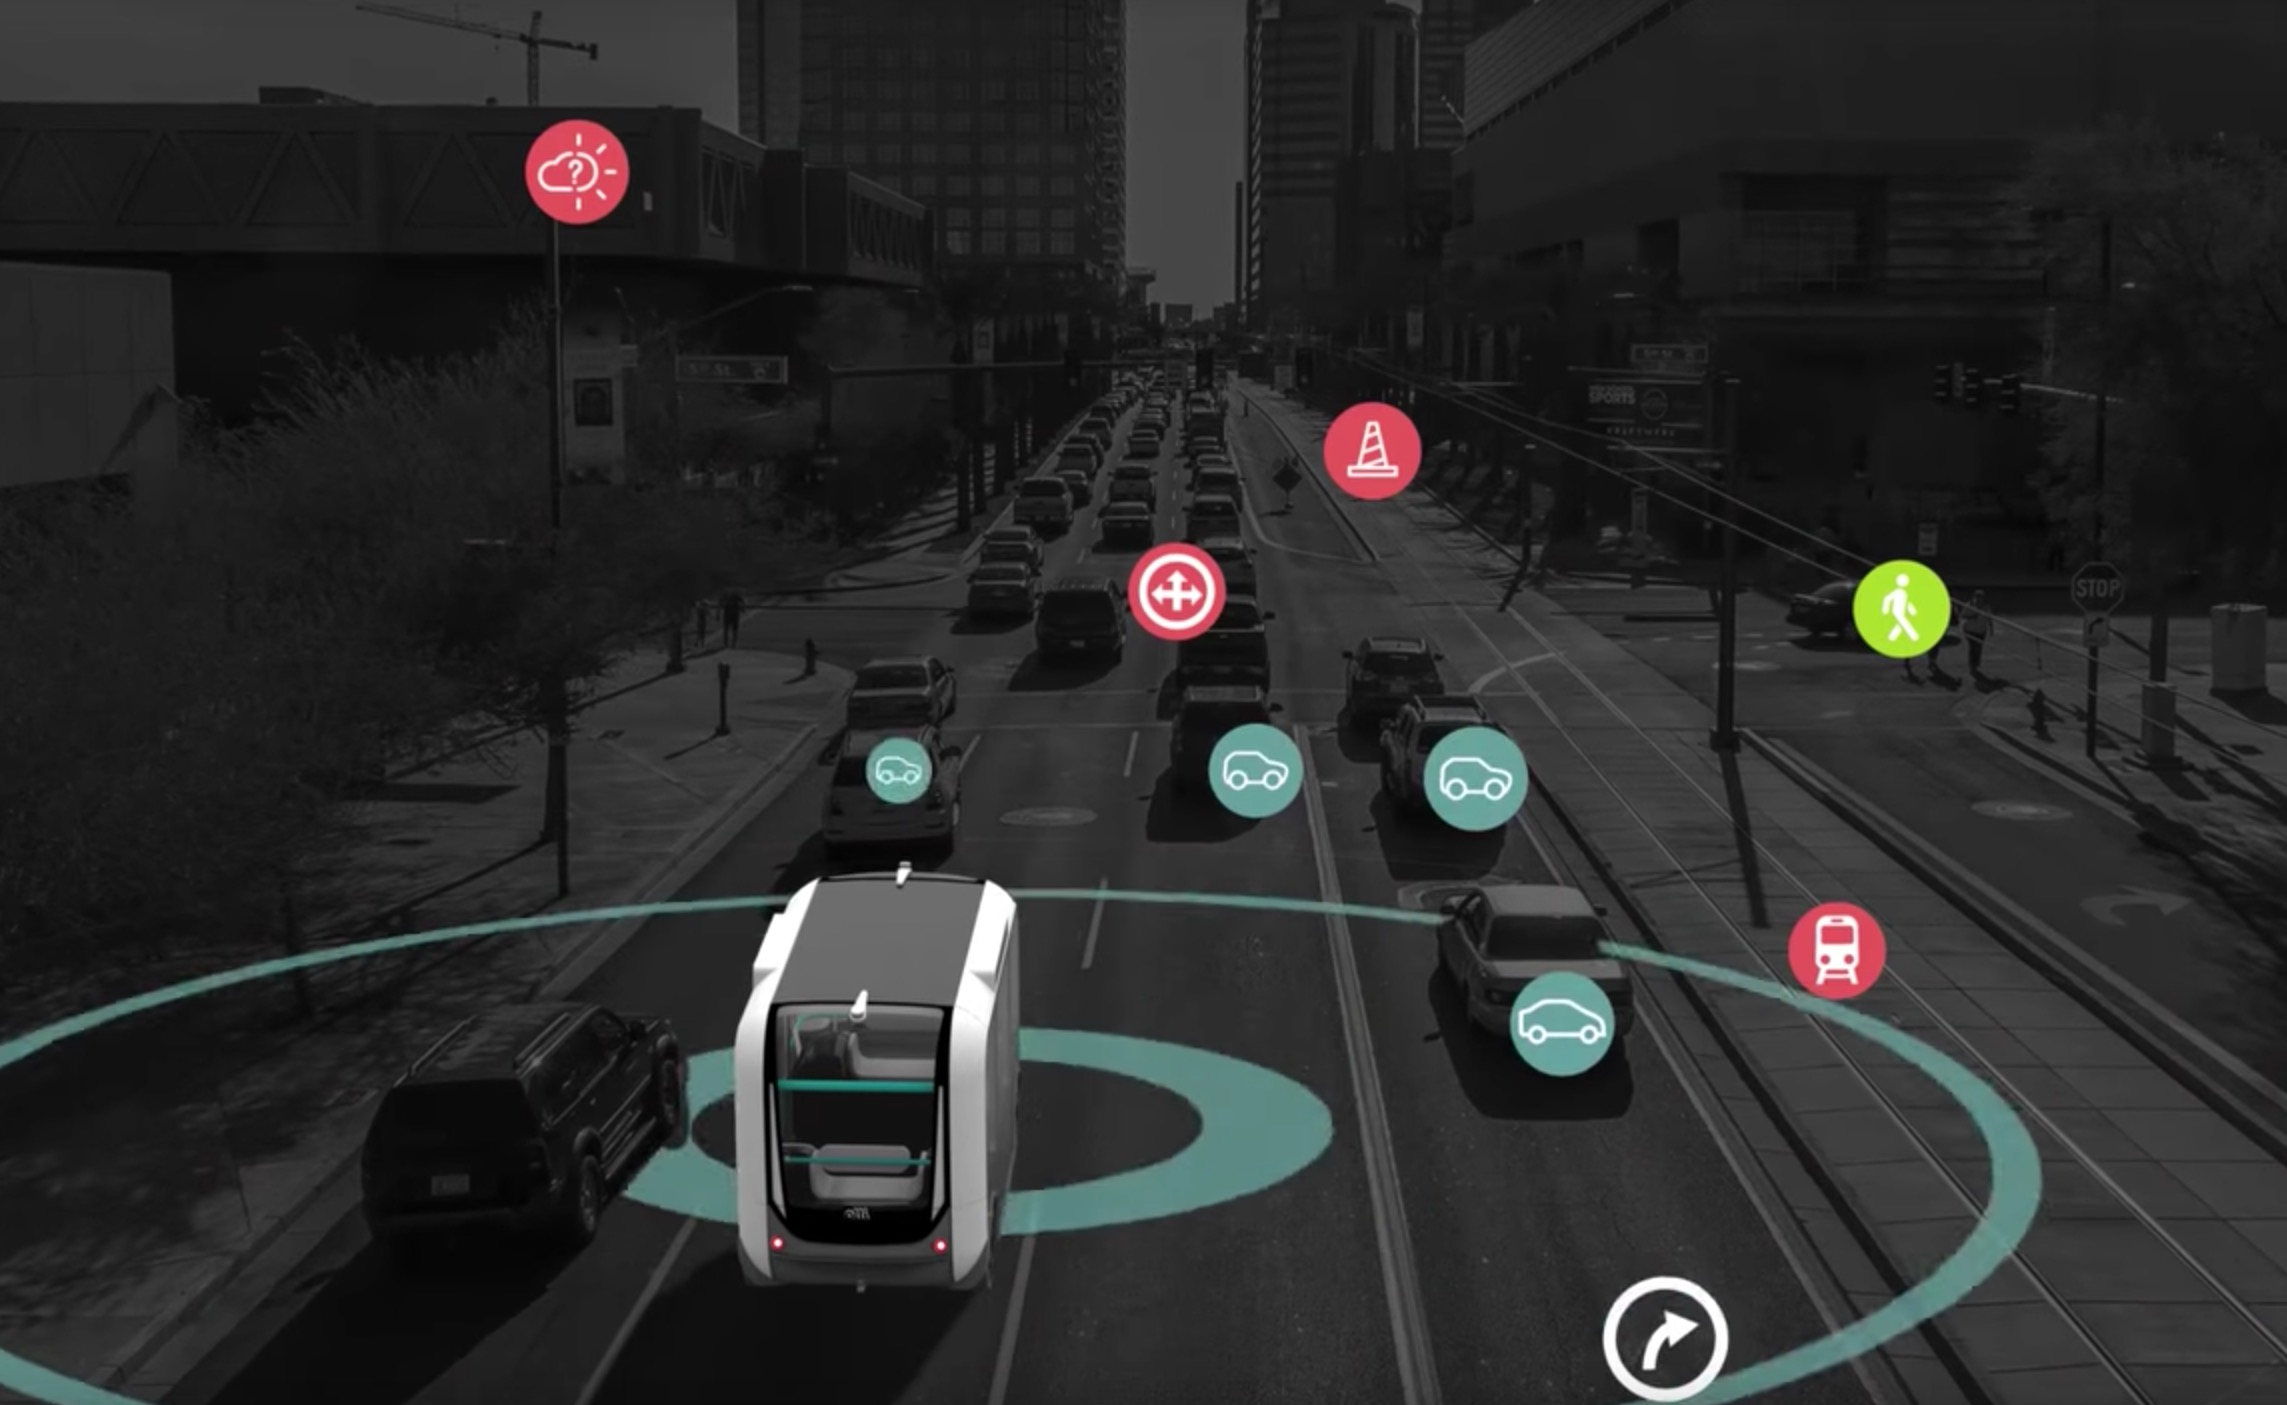 Olli's concept for self-driving sensors